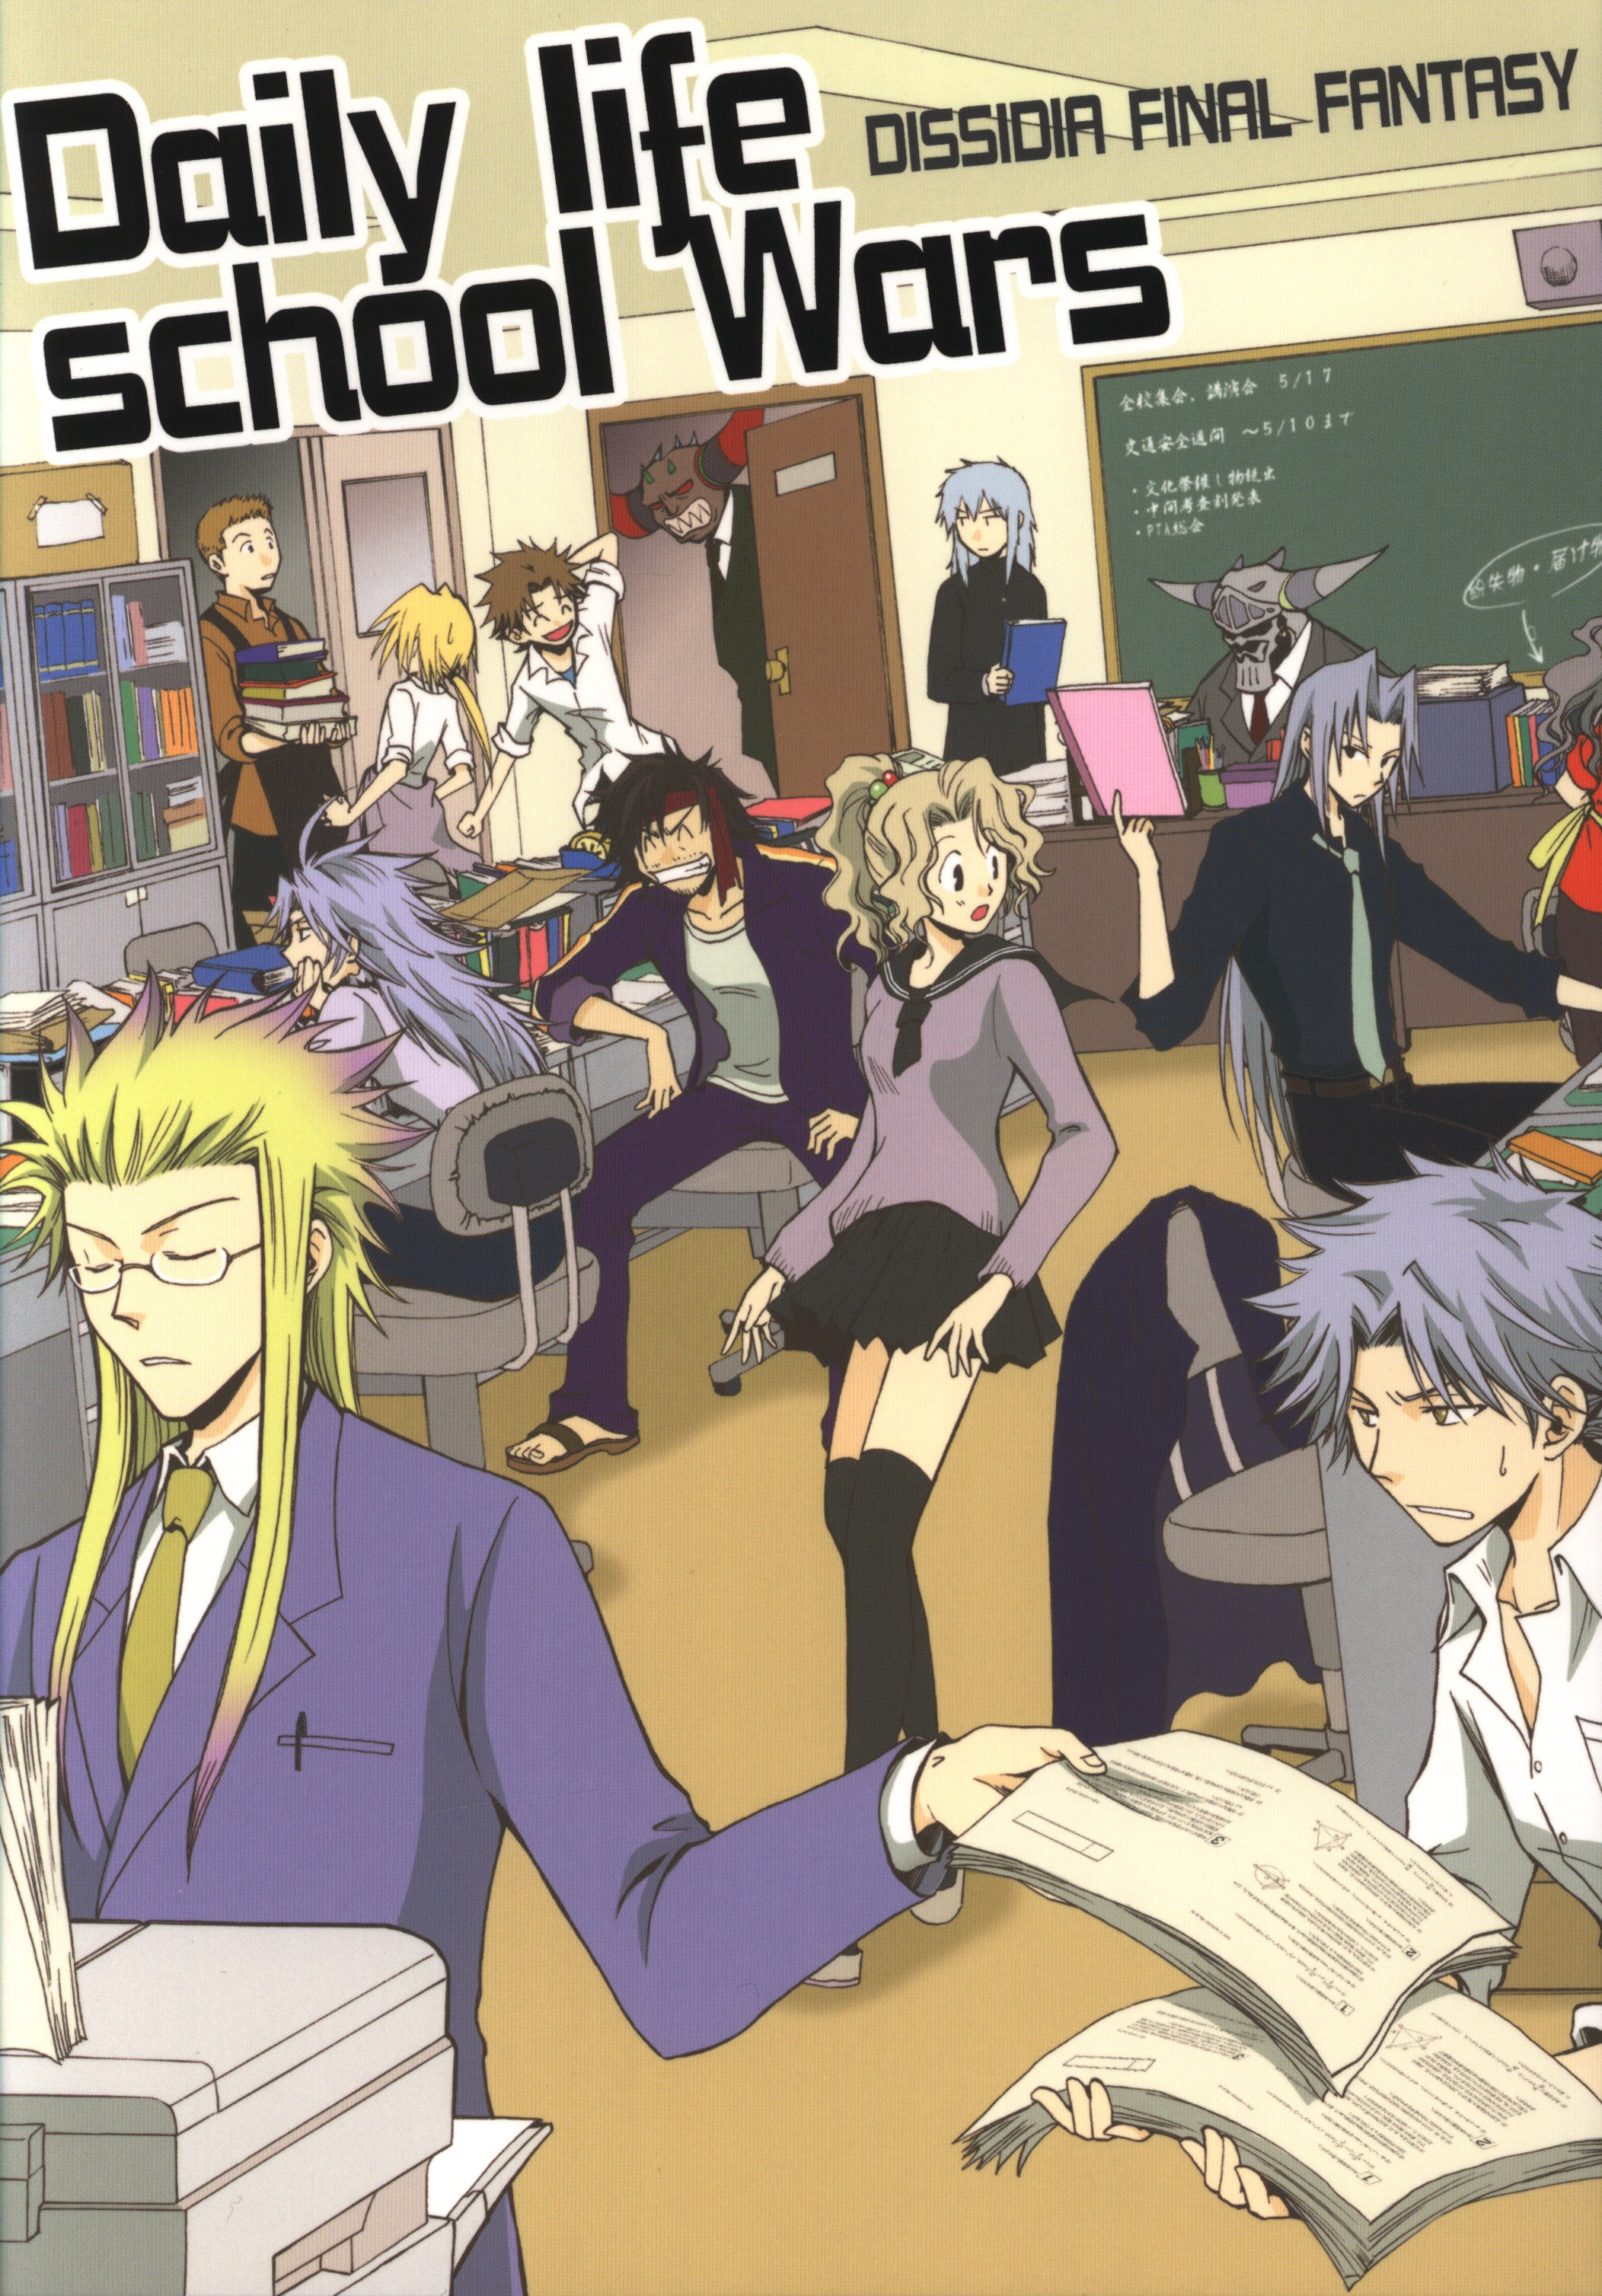 Doujinshi - Dissidia Final Fantasy / All Characters (Final Fantasy) (Daily life school Wars) / BE-SHI